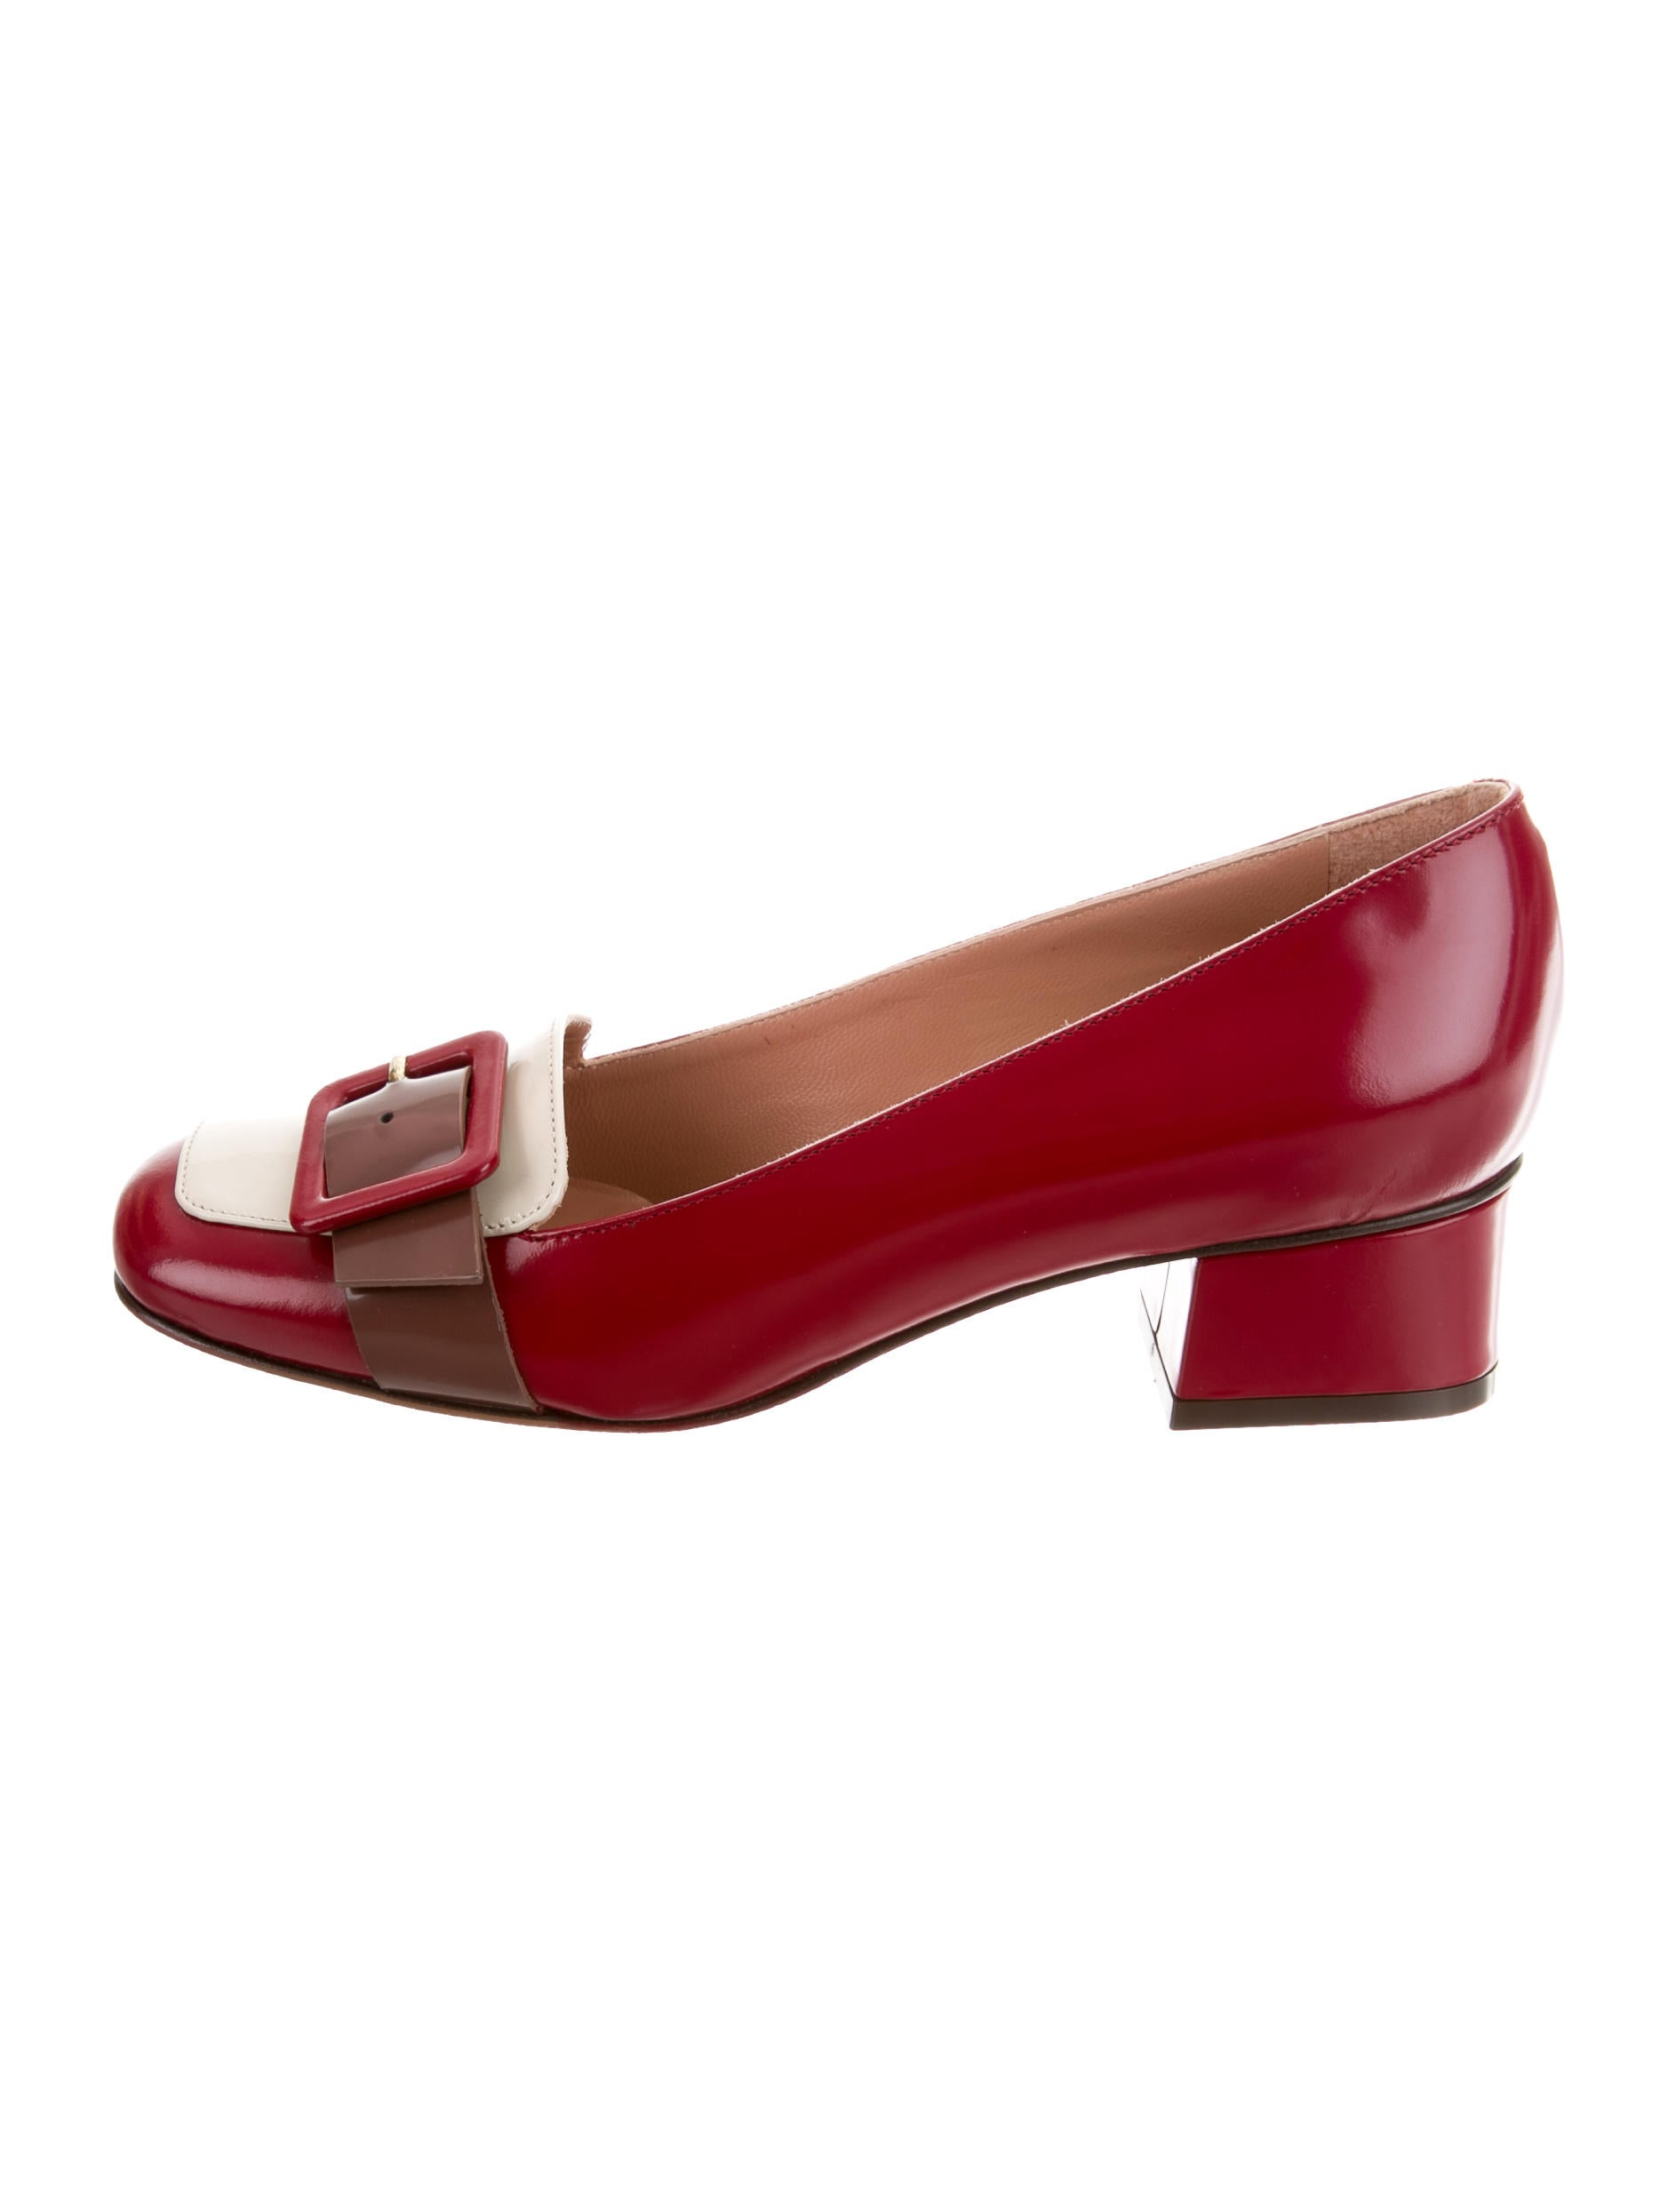 L'Autre Chose Leather Buckle Pumps w/ Tags sale wiki free shipping recommend with credit card for sale w83B1ikRk